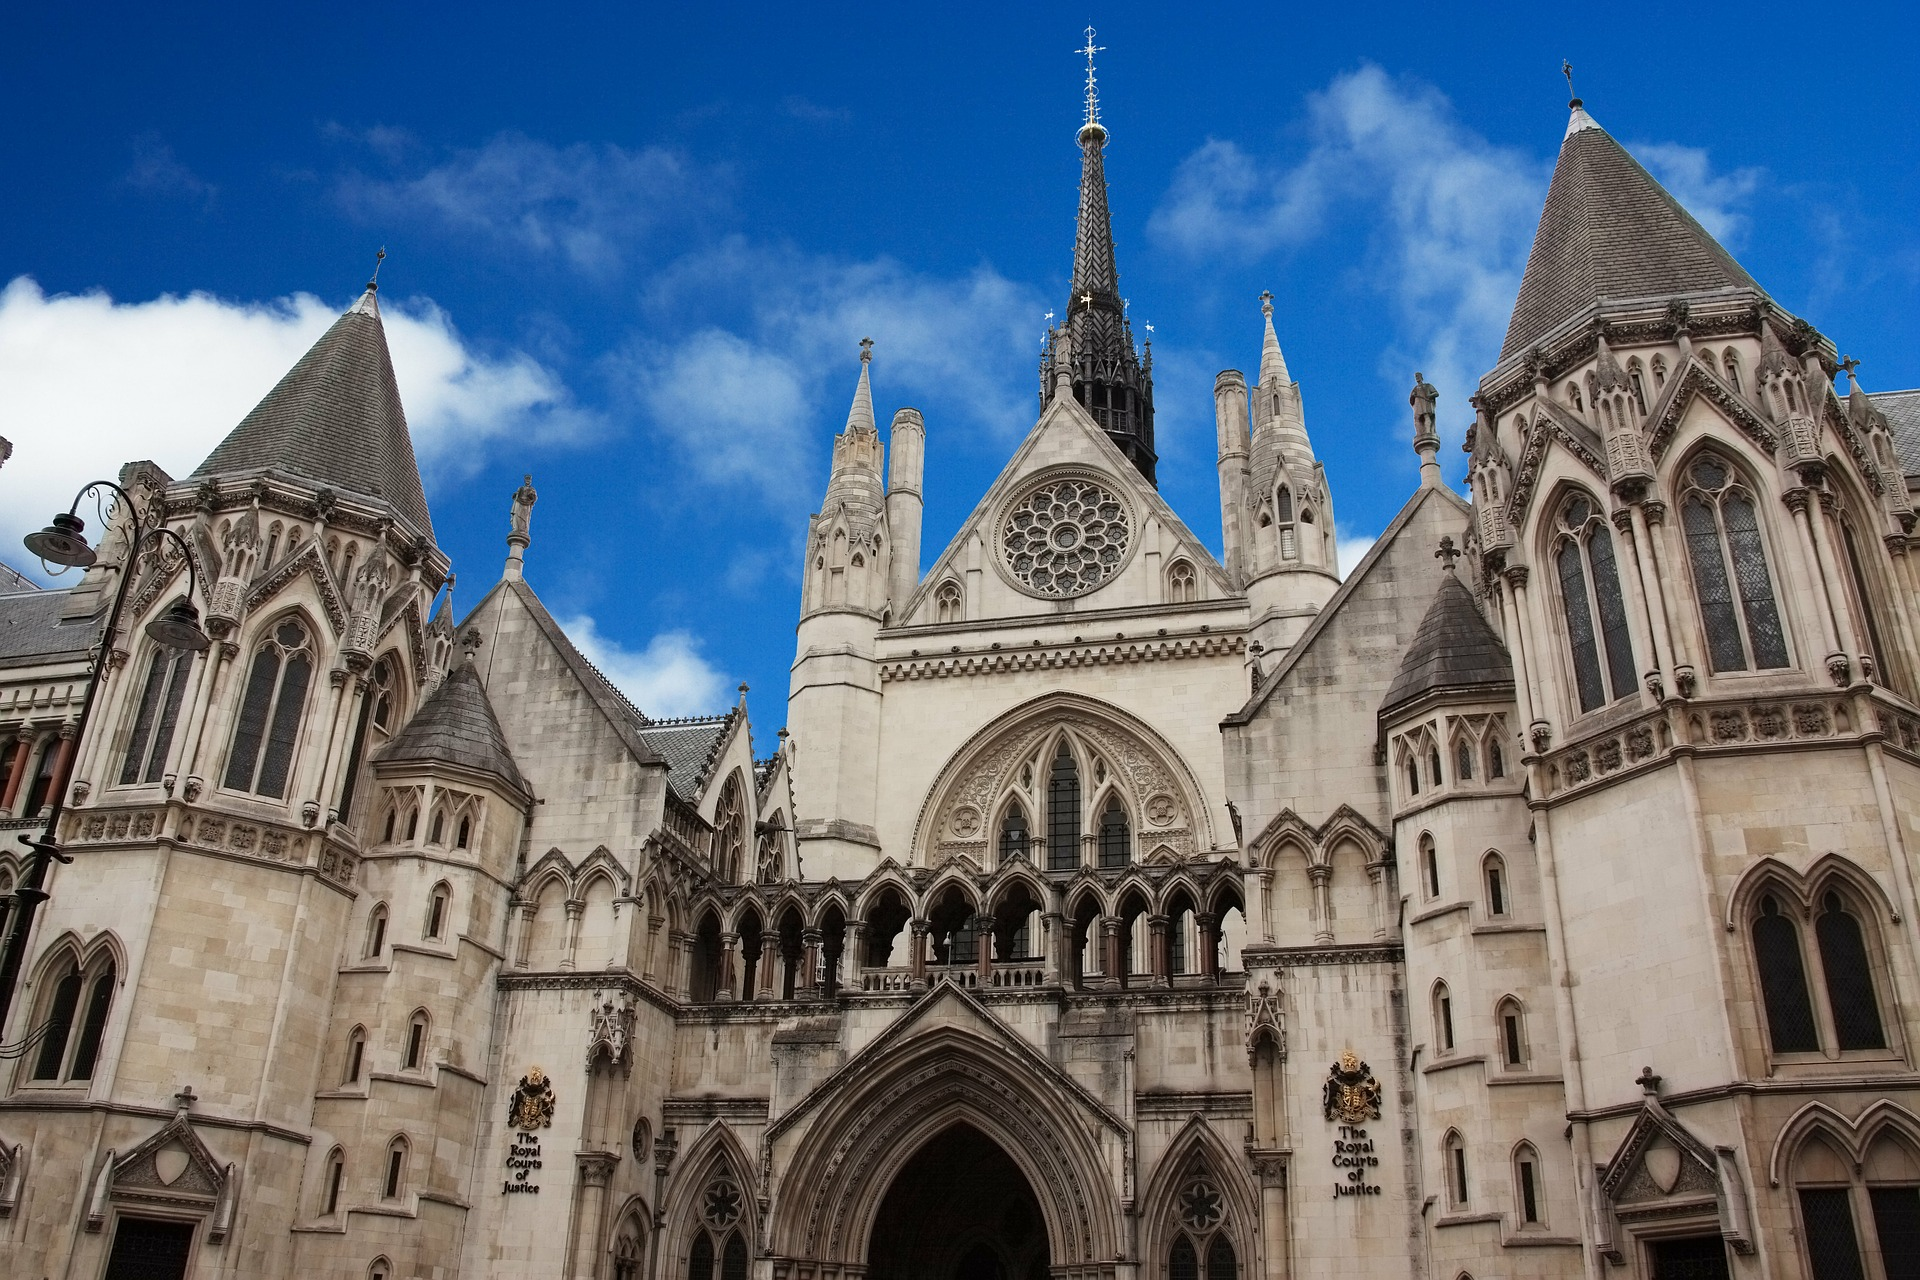 Court of Appeal dealing with Unduly Lenient Sentences